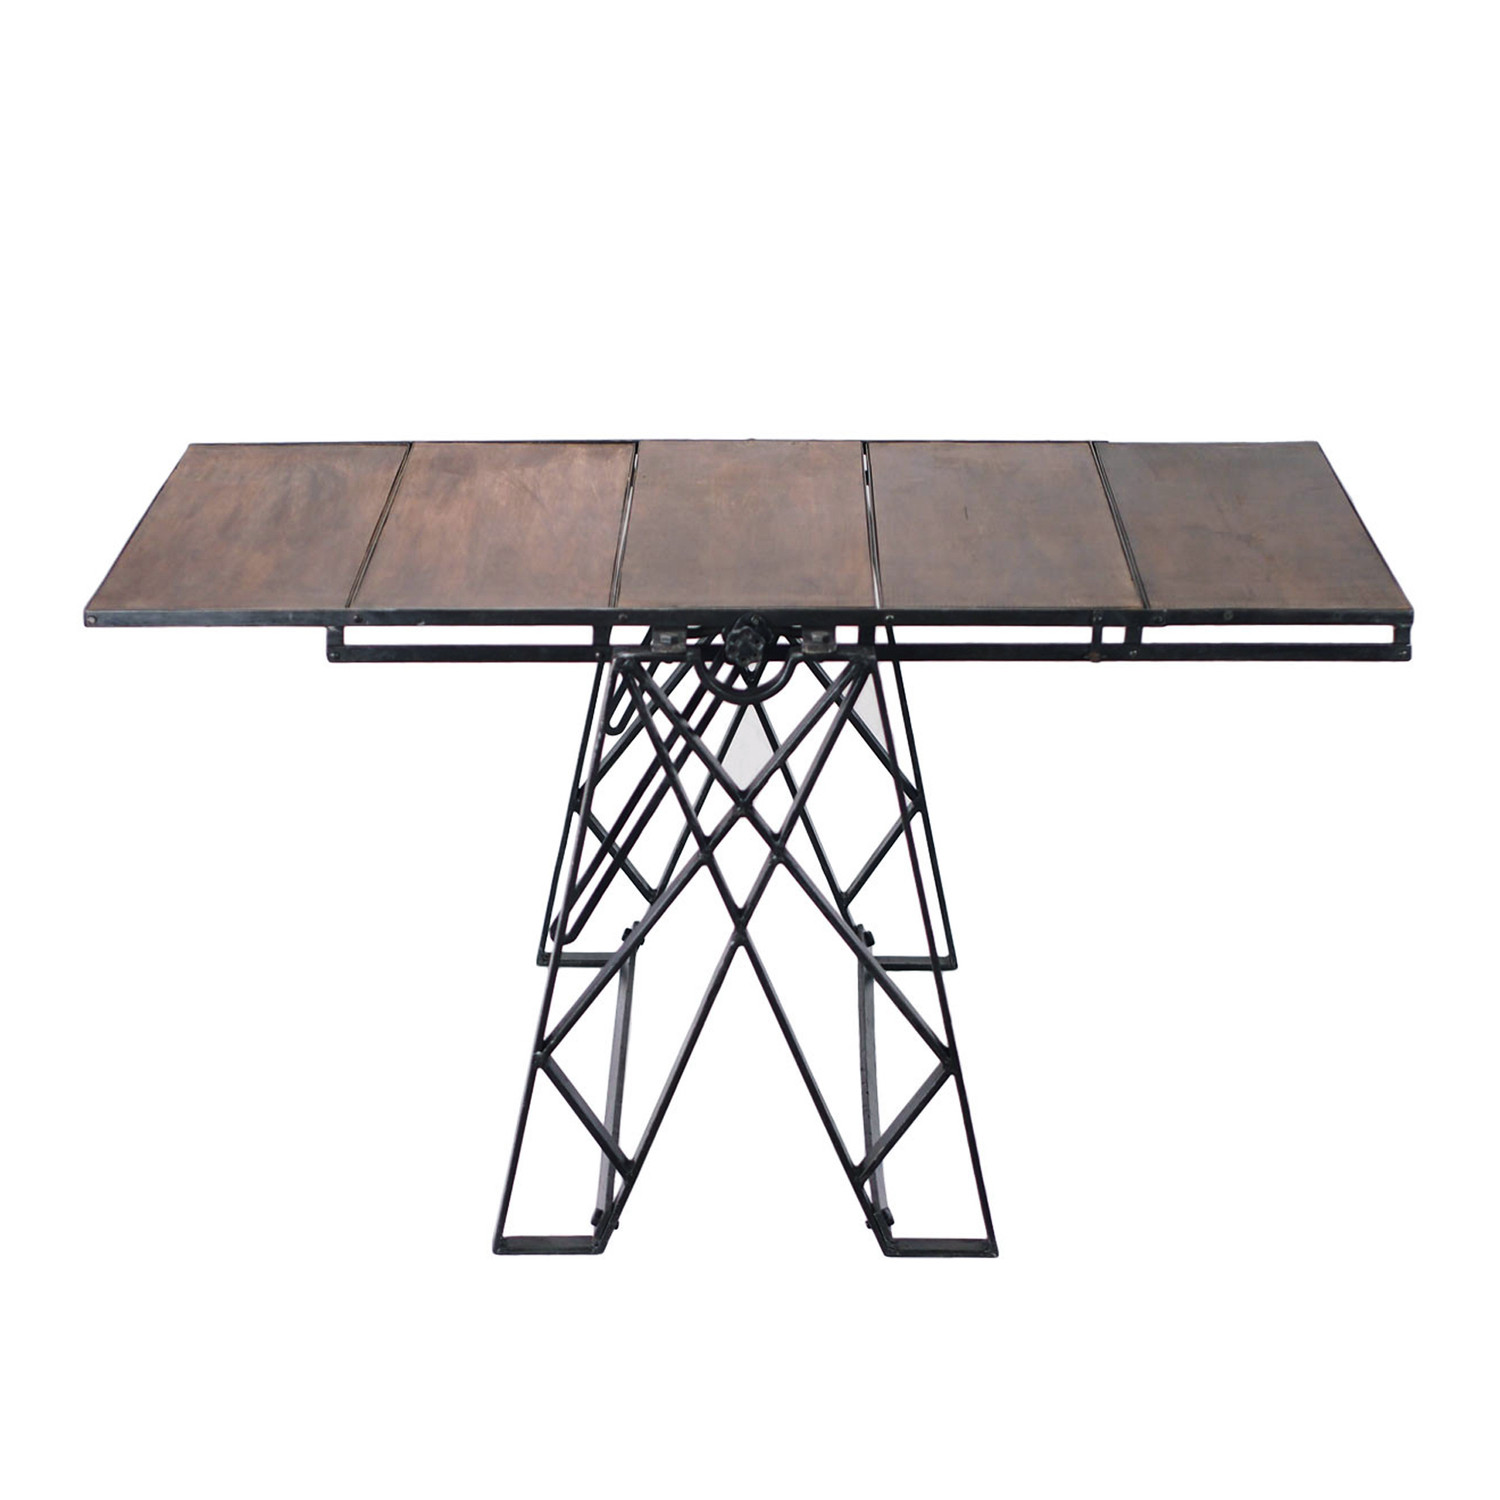 Allegheny Convertible Five Tier Shelf And Table Crash